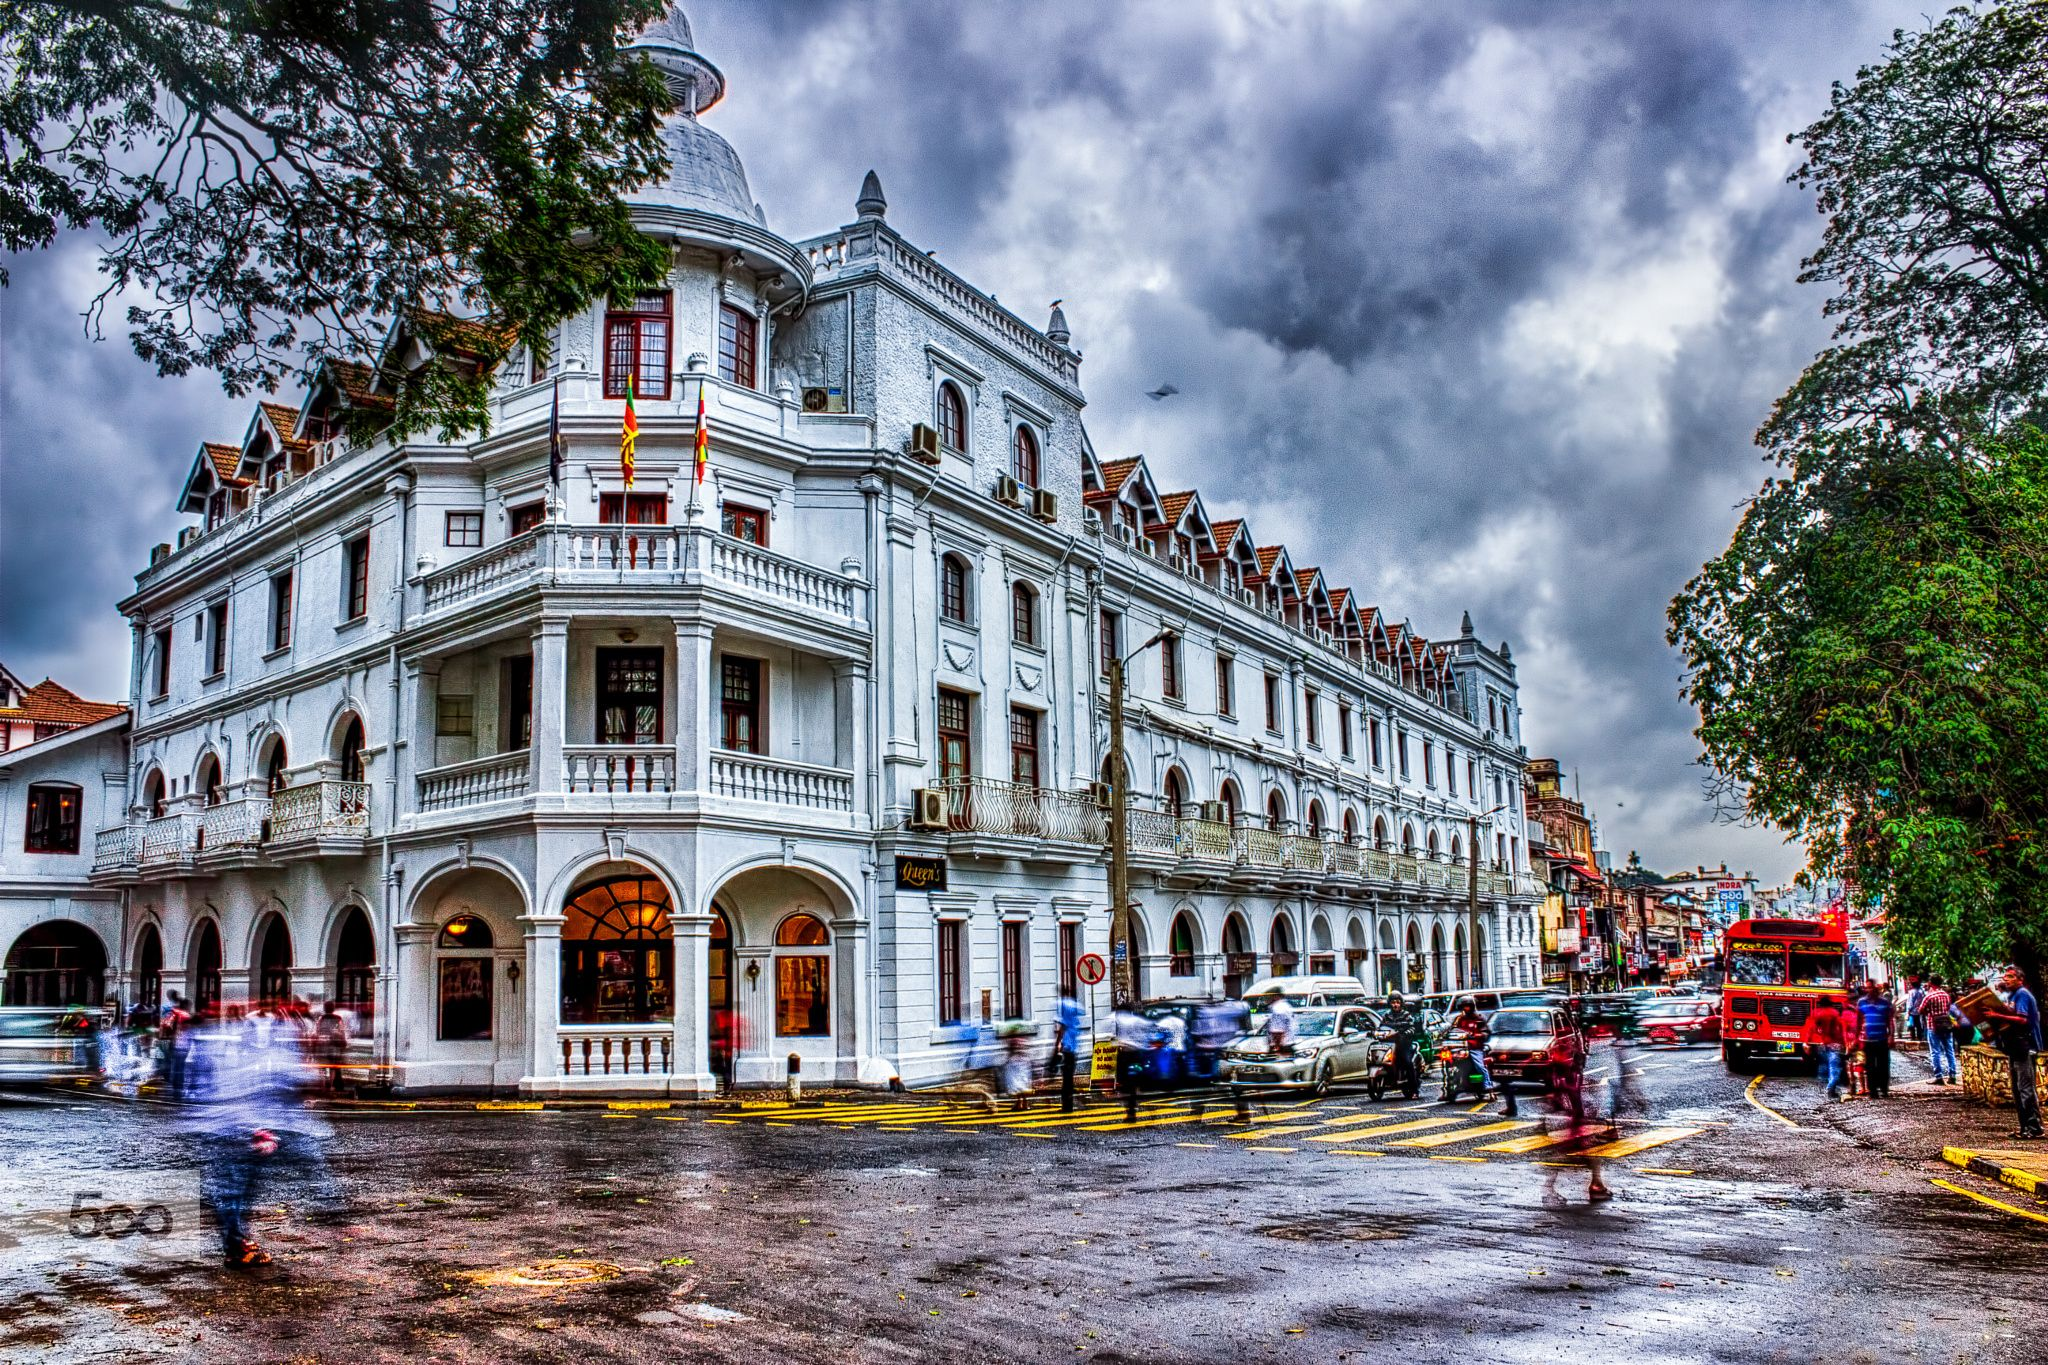 Queens Hotel Kandy By Buddhika Jayawardana On 500px With Images